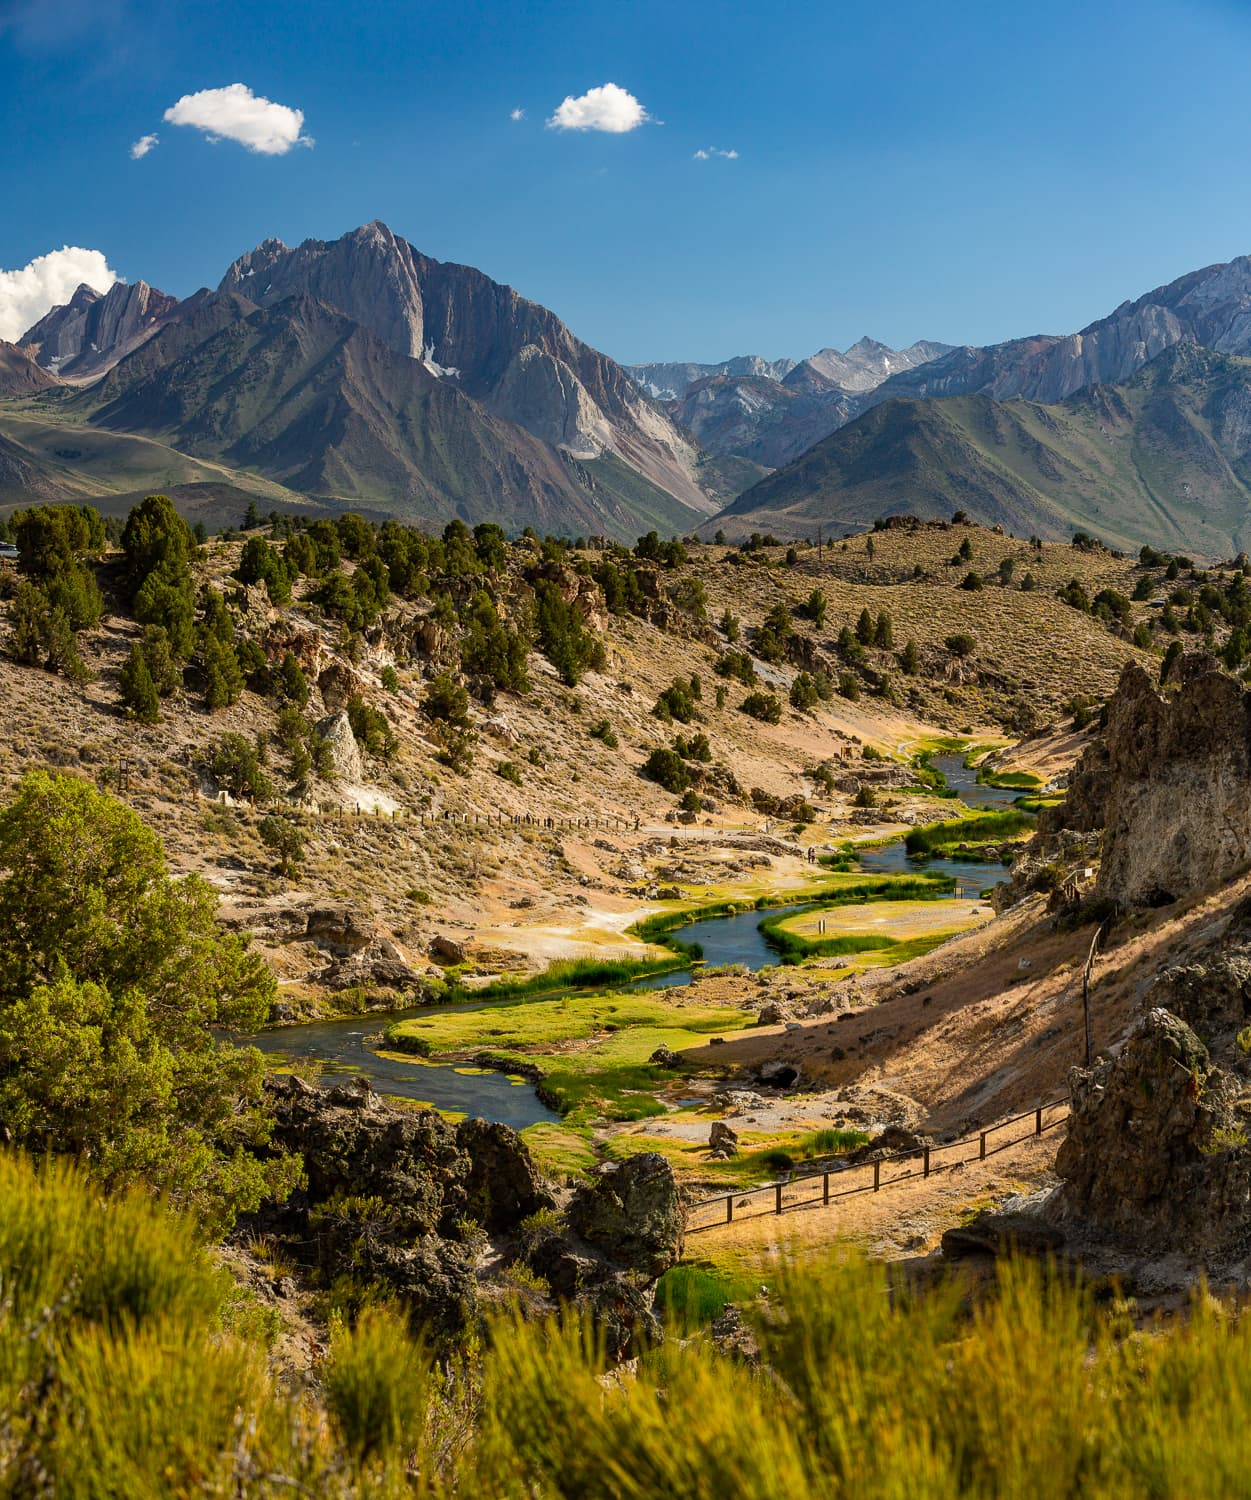 A colorful landscape photo looking west over the winding hot creek with mammoth mountain in the background.